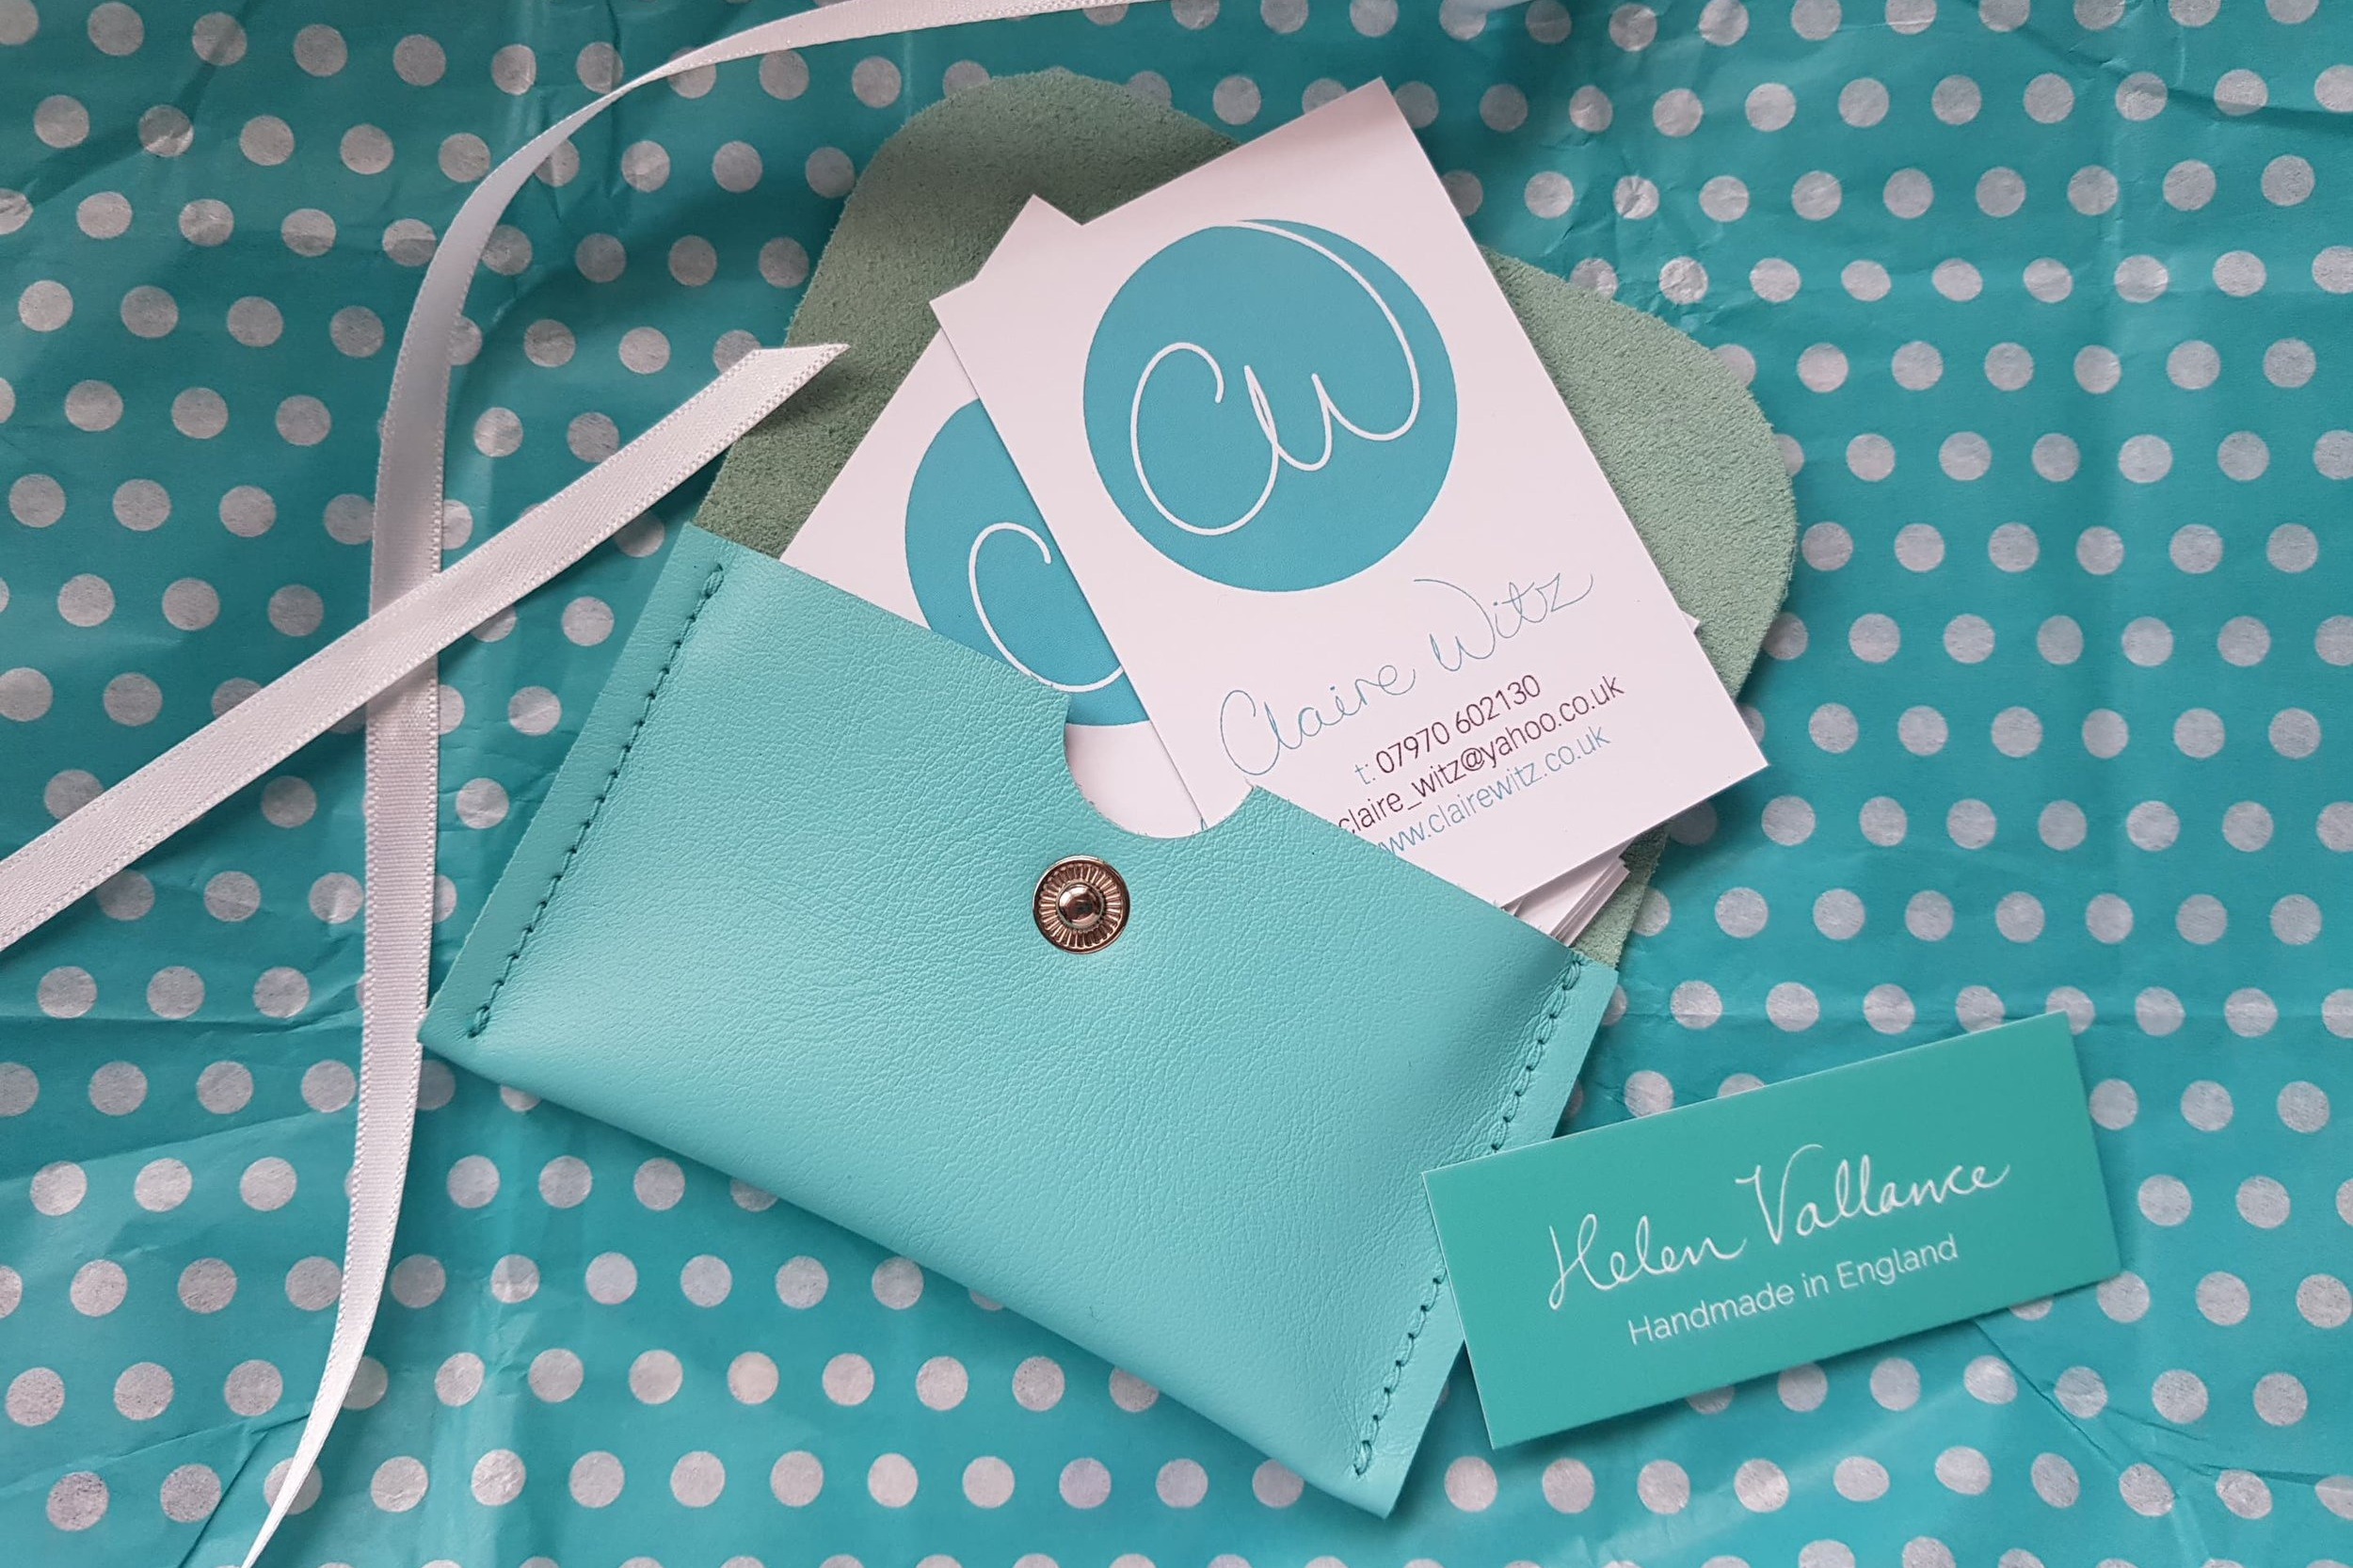 A perfect combo of my new business cards and leather business card wallet by Helen Vallance.